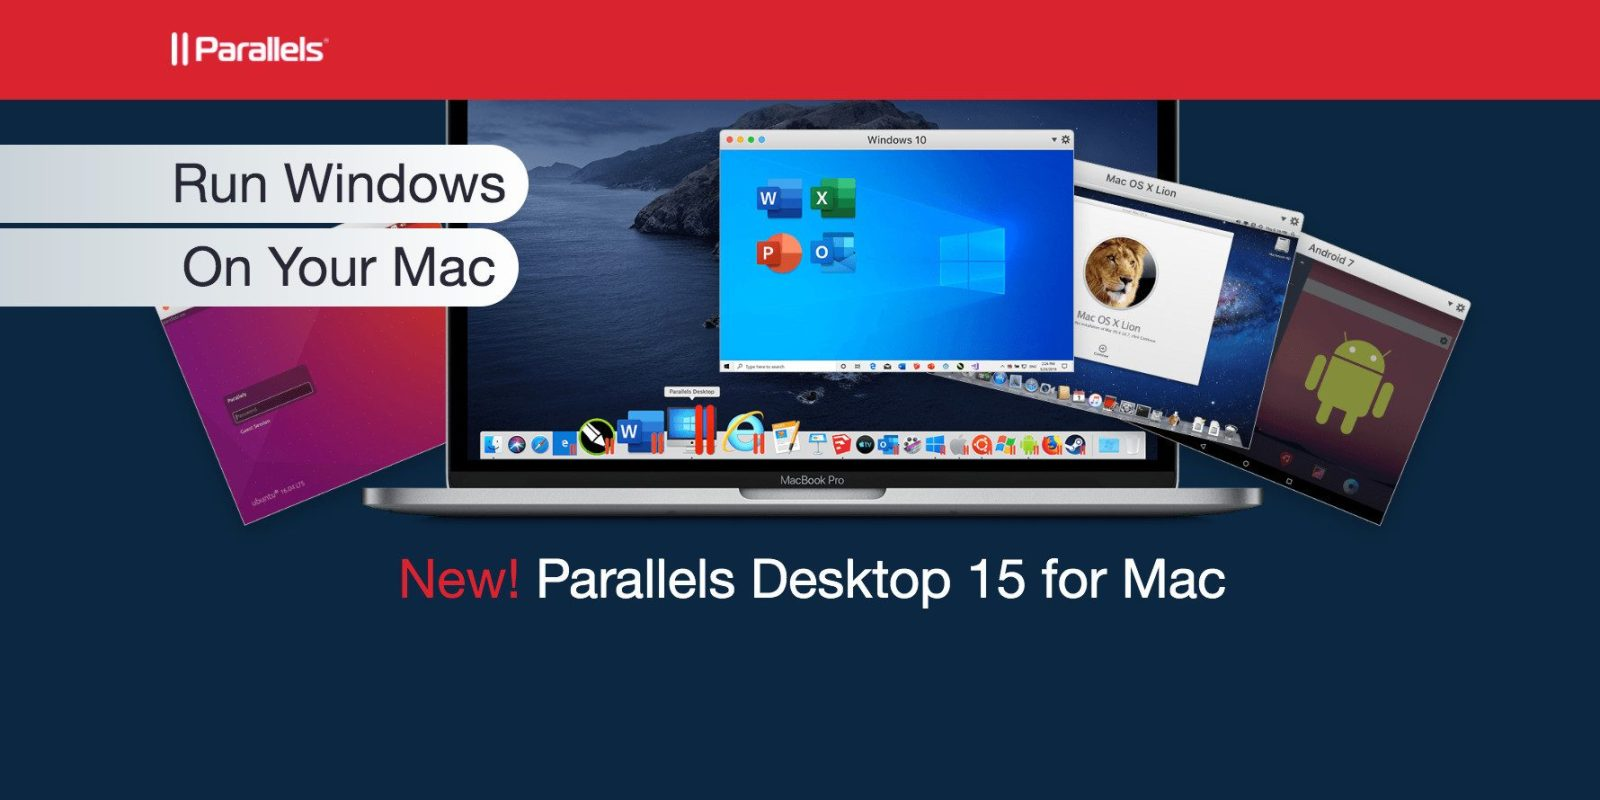 Save 30% or more on Parallels Desktop 15, Quicken, and other software from $14